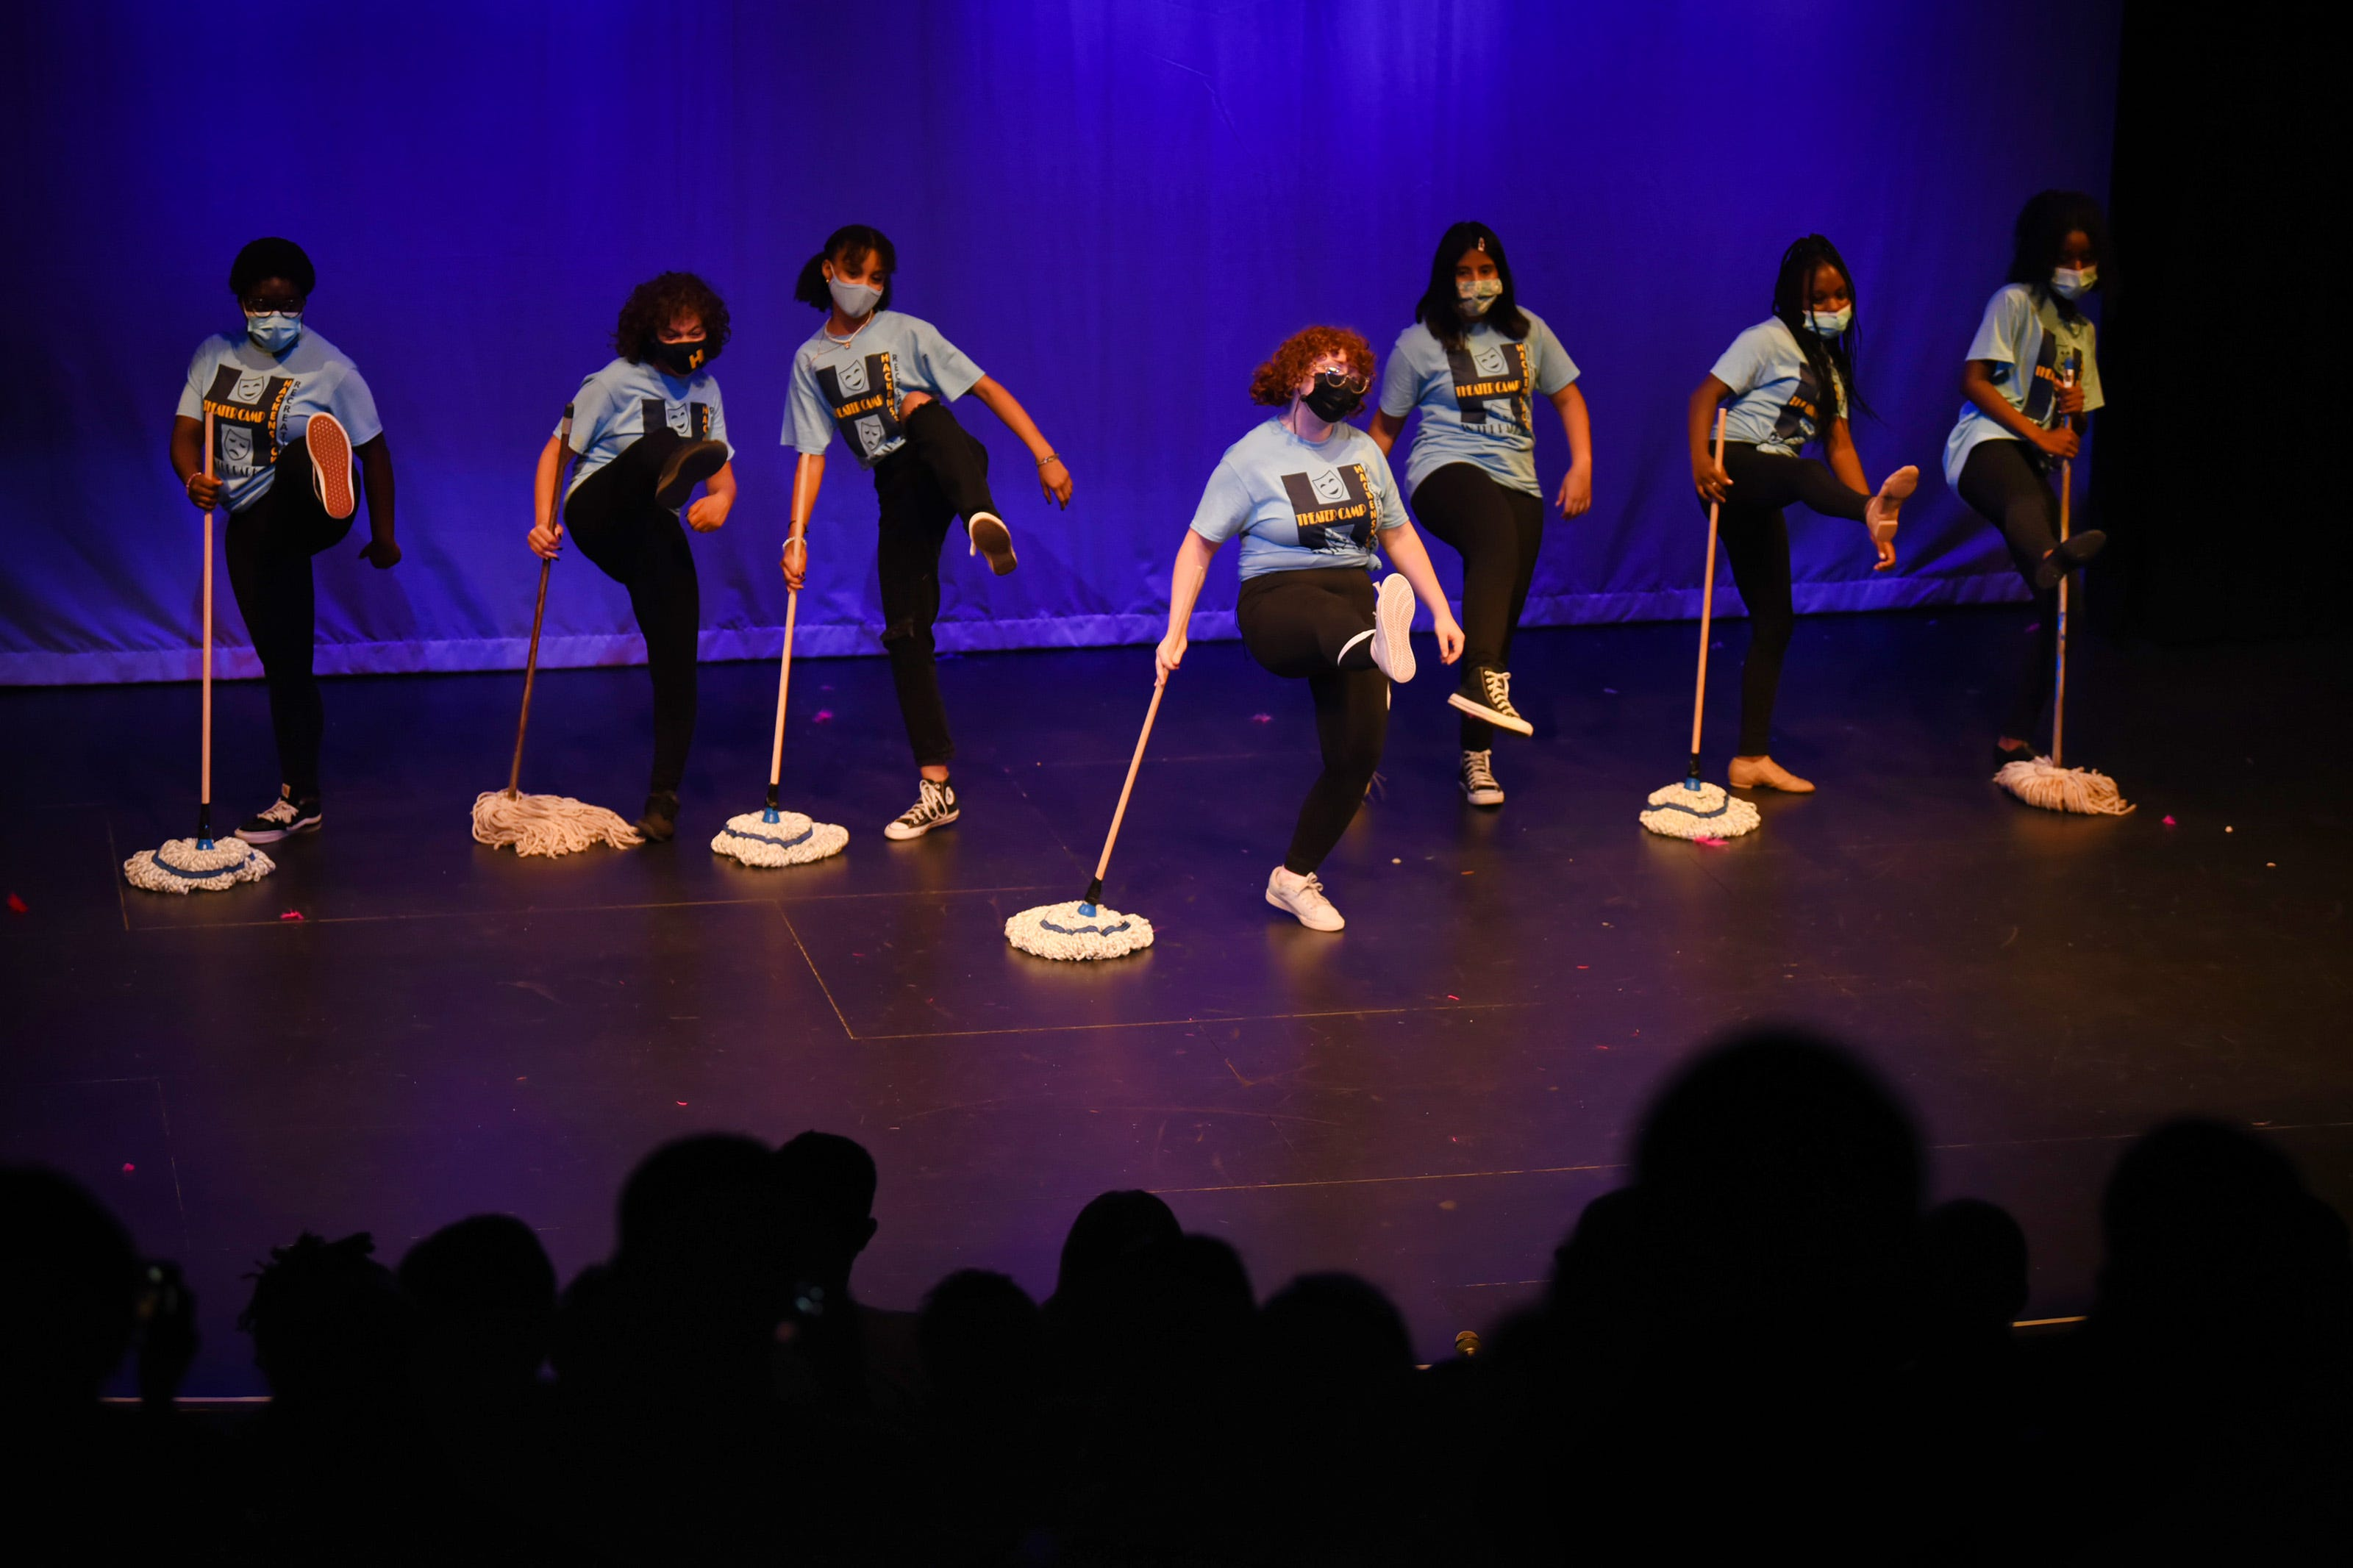 Members of Theater Camp 2021 present a selection of musical reviews directed by Gregory Liosi and hosted by HACPAC at the Hackensack Performing Arts Center on 08/05/21.